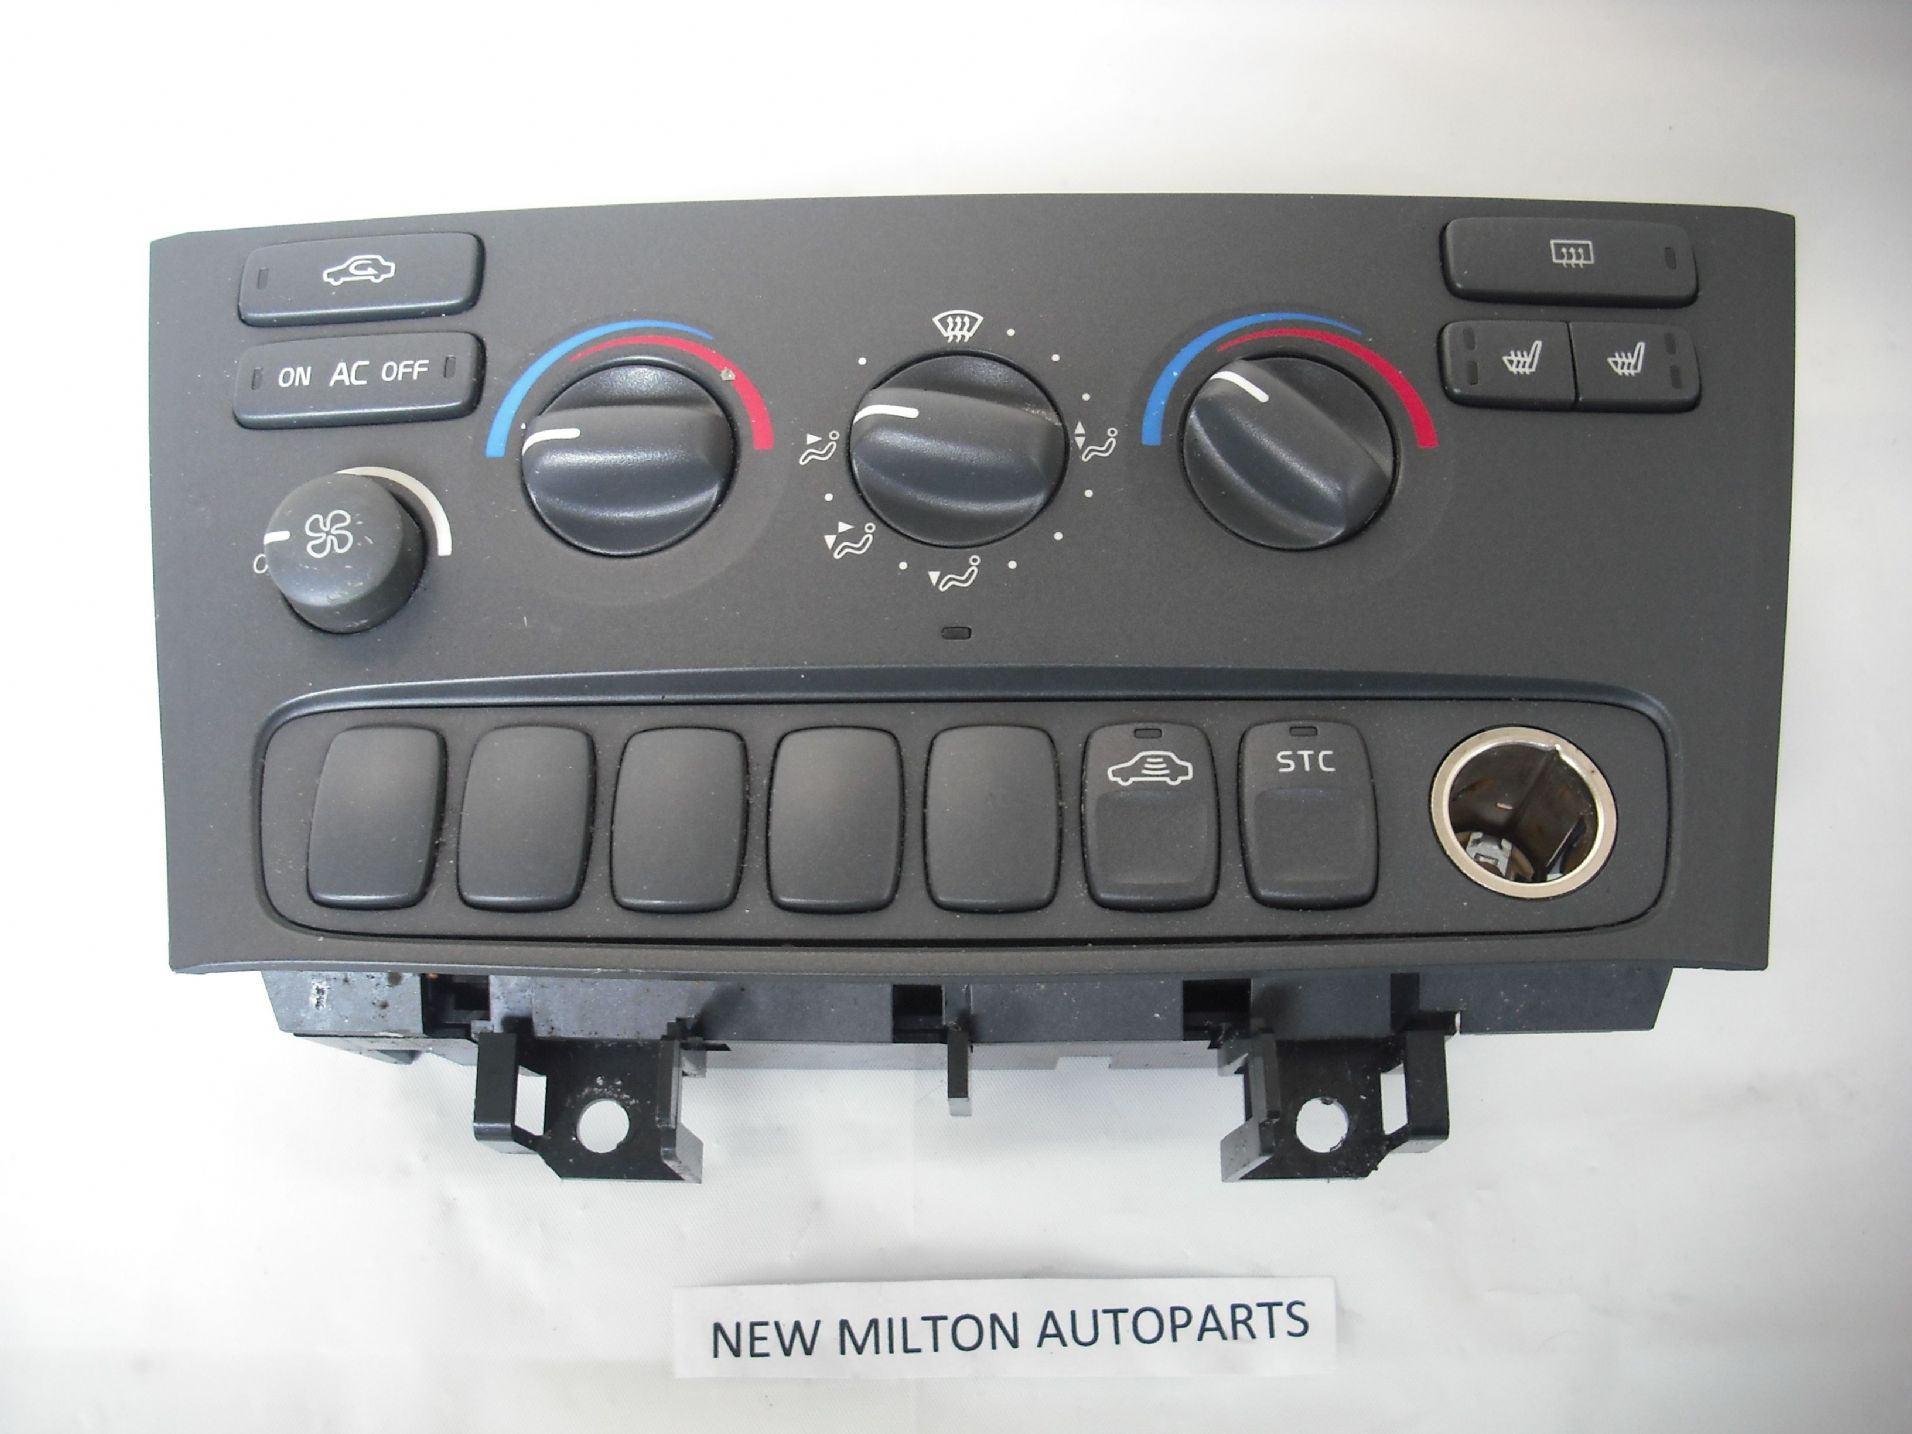 Volvo s60 s80 v70 xc90 a c heater control panel heated for 1999 volvo v70 window switch